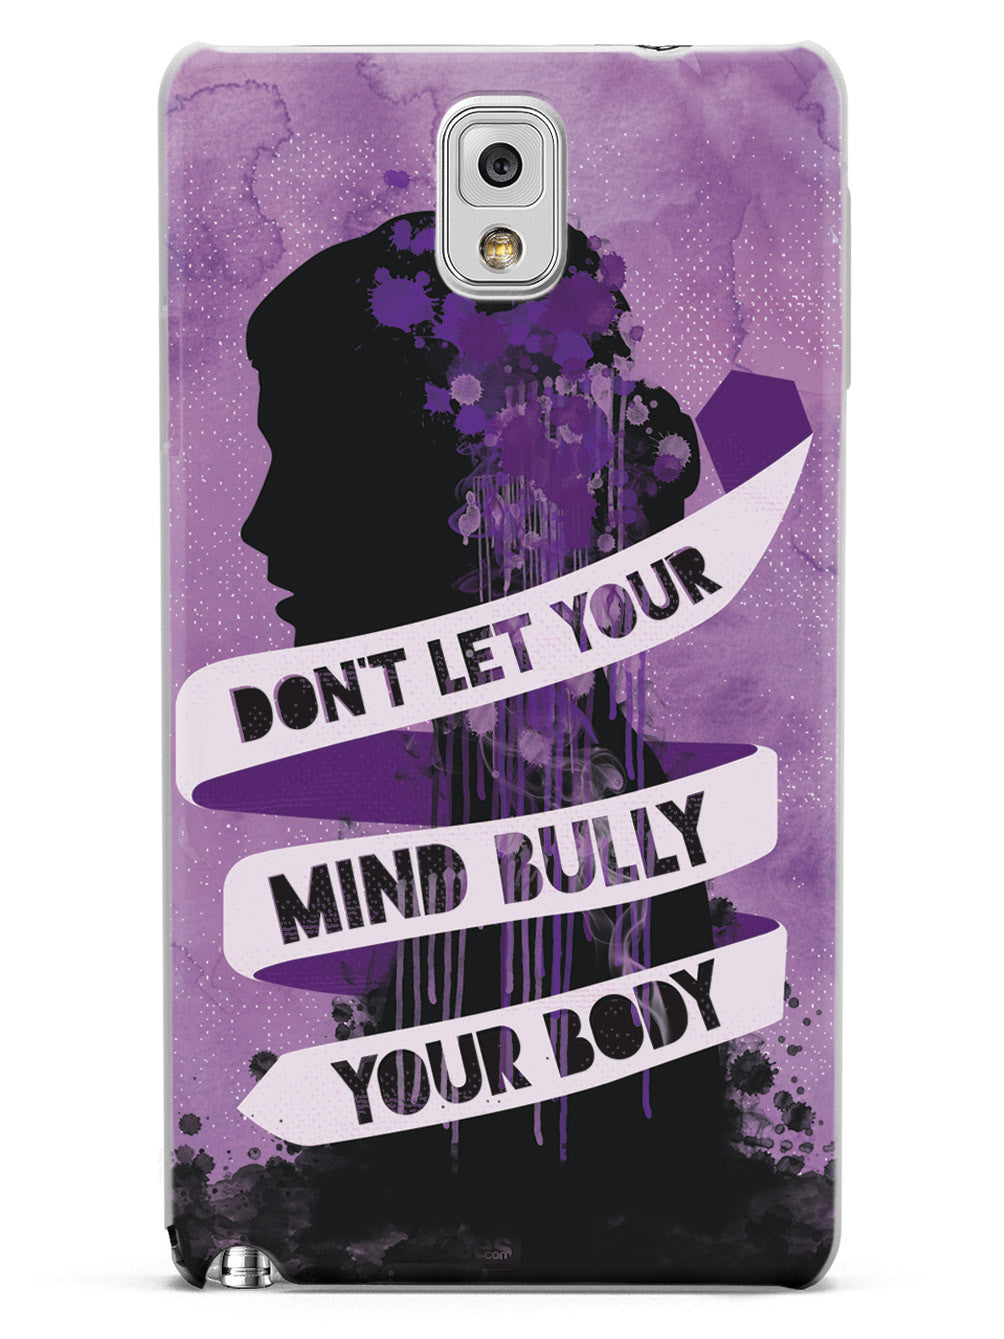 Don't Let Your Mind Bully Your Body Case